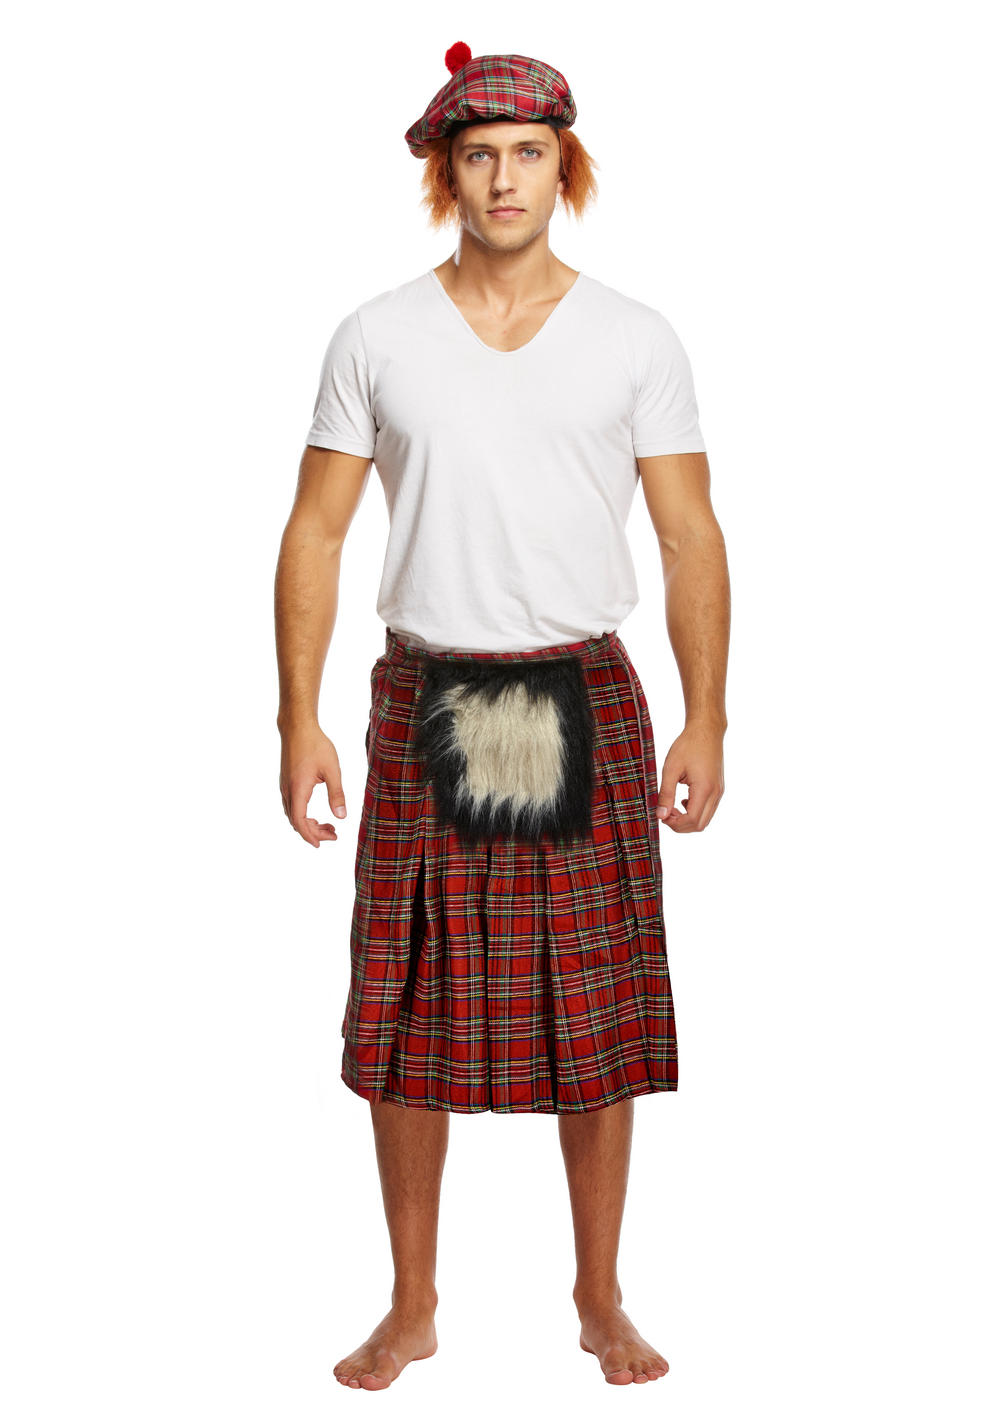 Kilt with Sporran Mens Costume